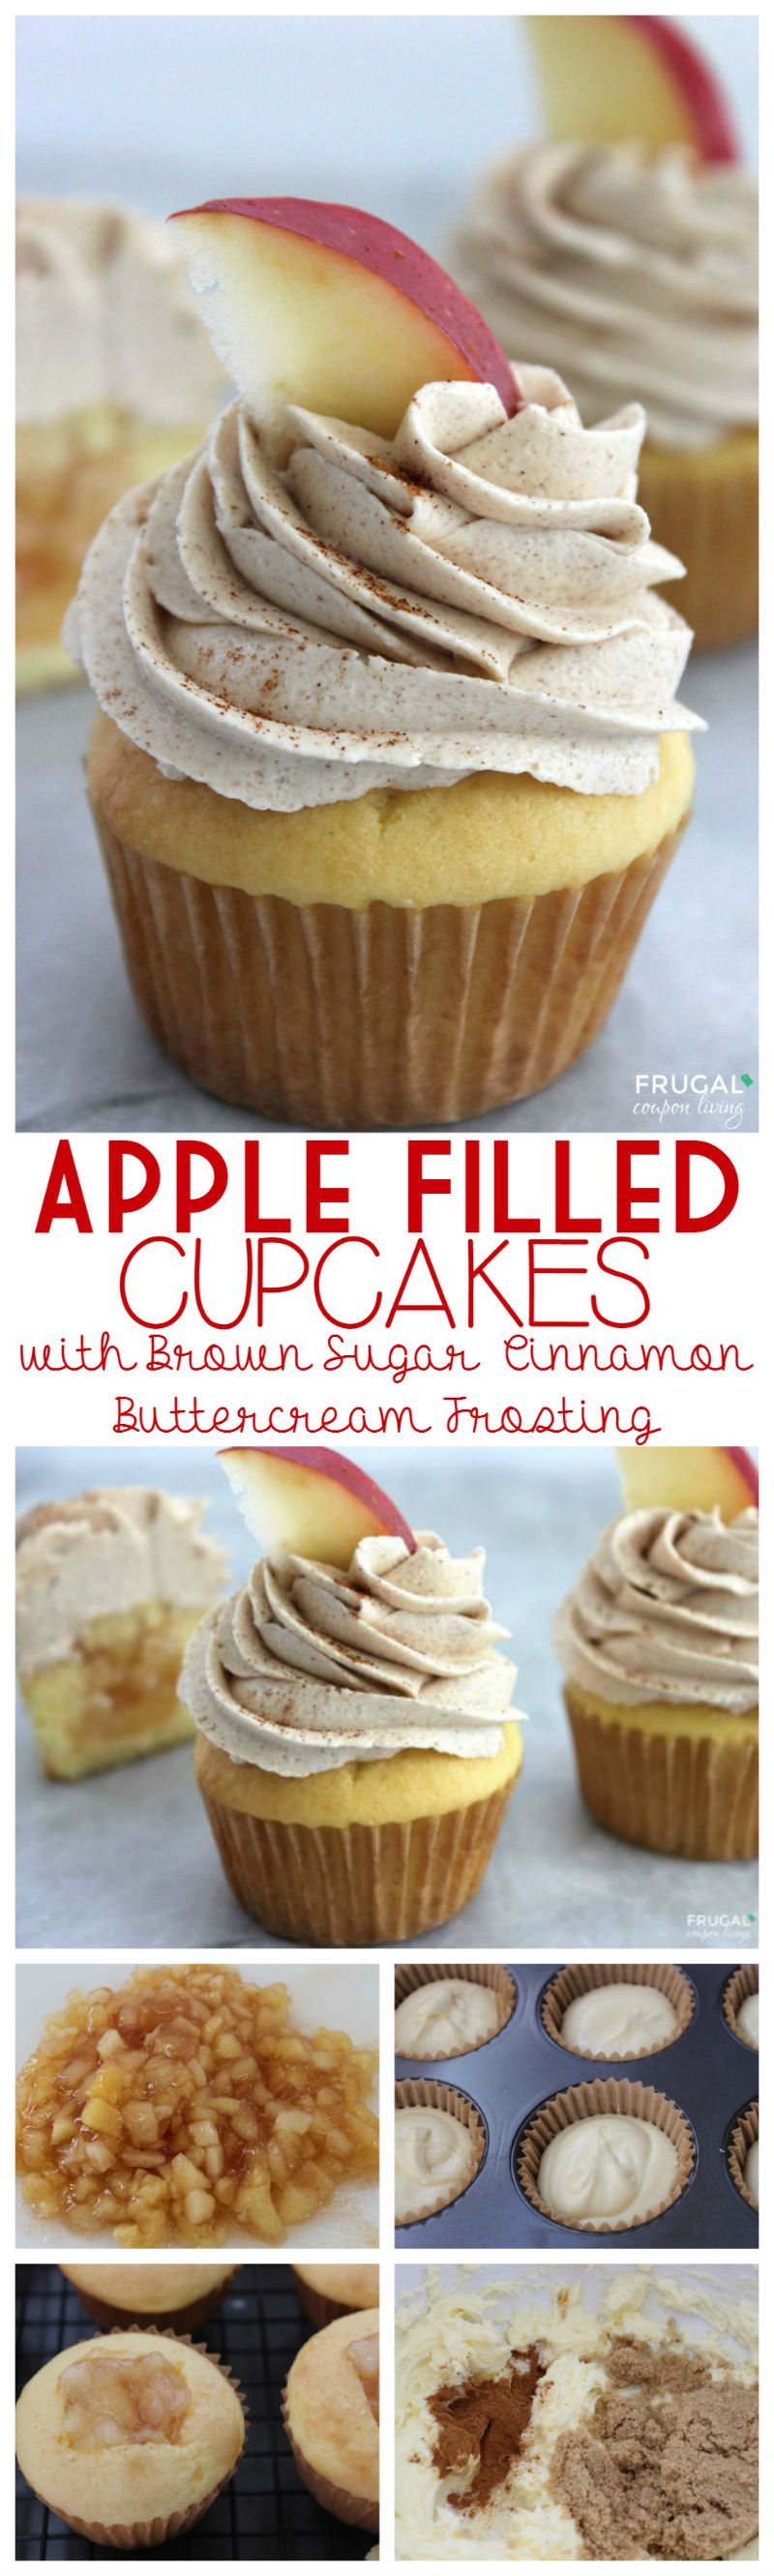 apple-filled-cupcakes-Collage-frugal-coupon-living